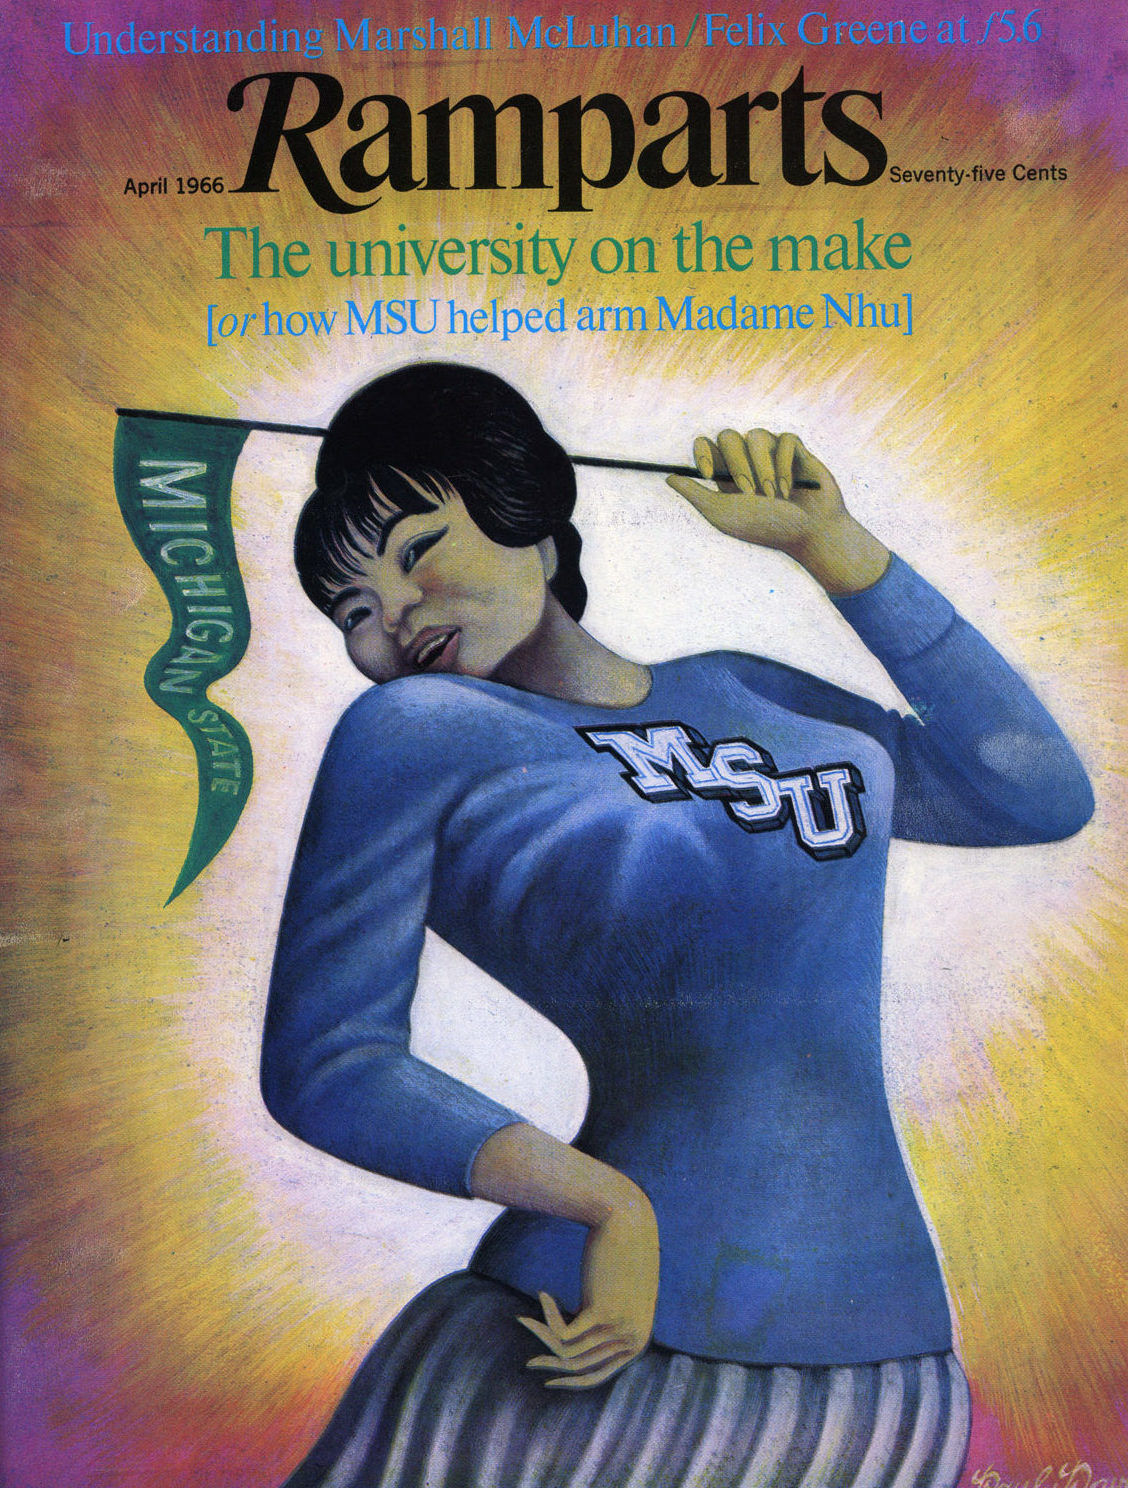 Magazine cover drawing of a vietnamese woman wearing MSU outfit